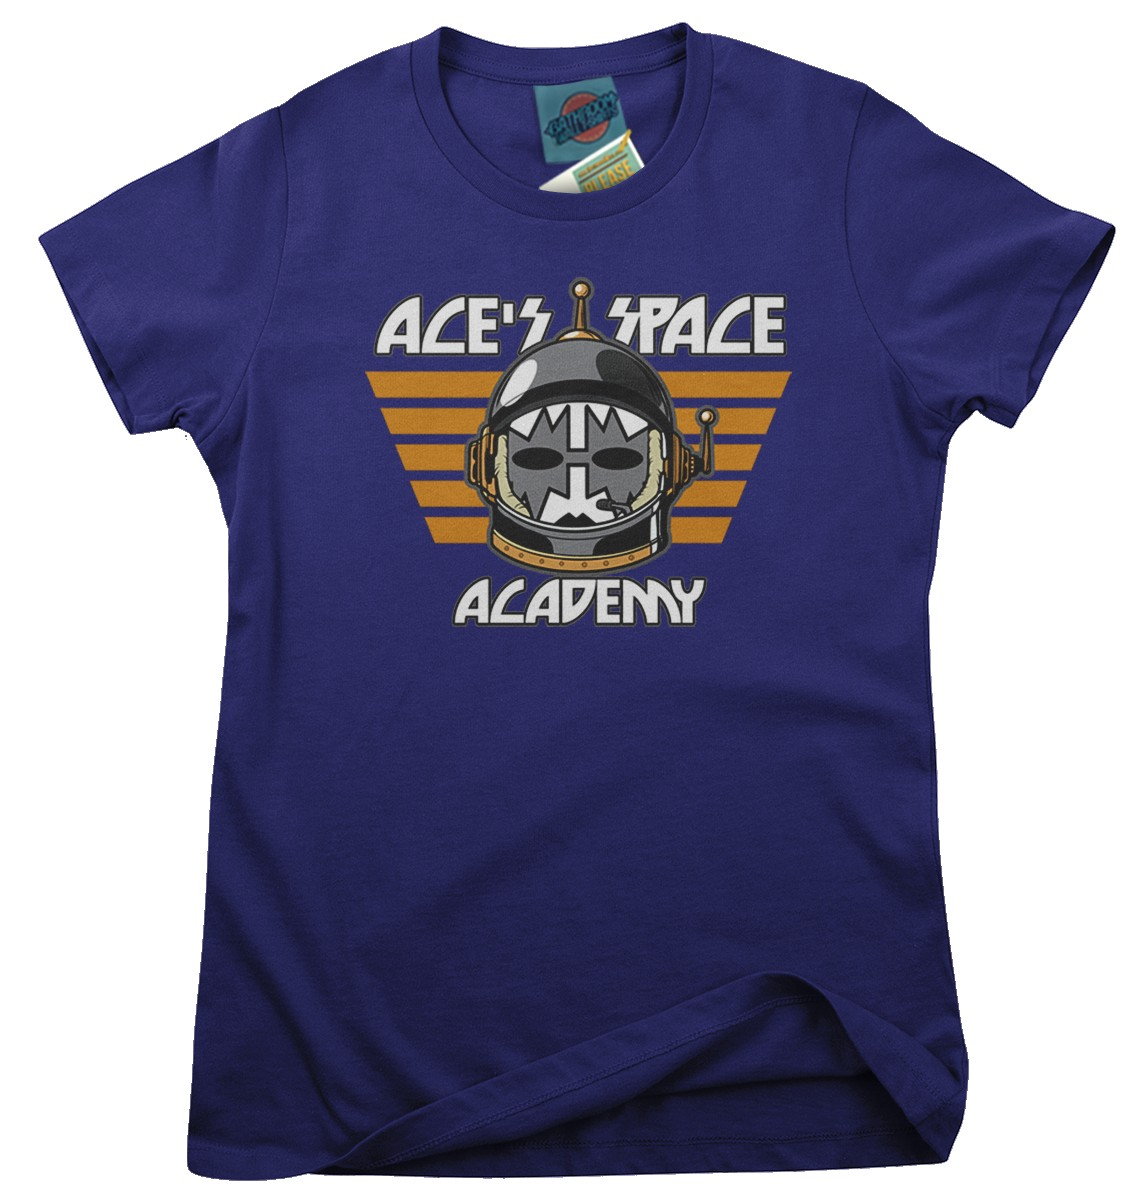 Ace-Frehley-Kiss-Ace-039-s-Space-Academy-inspired-Femmes-T-Shirt